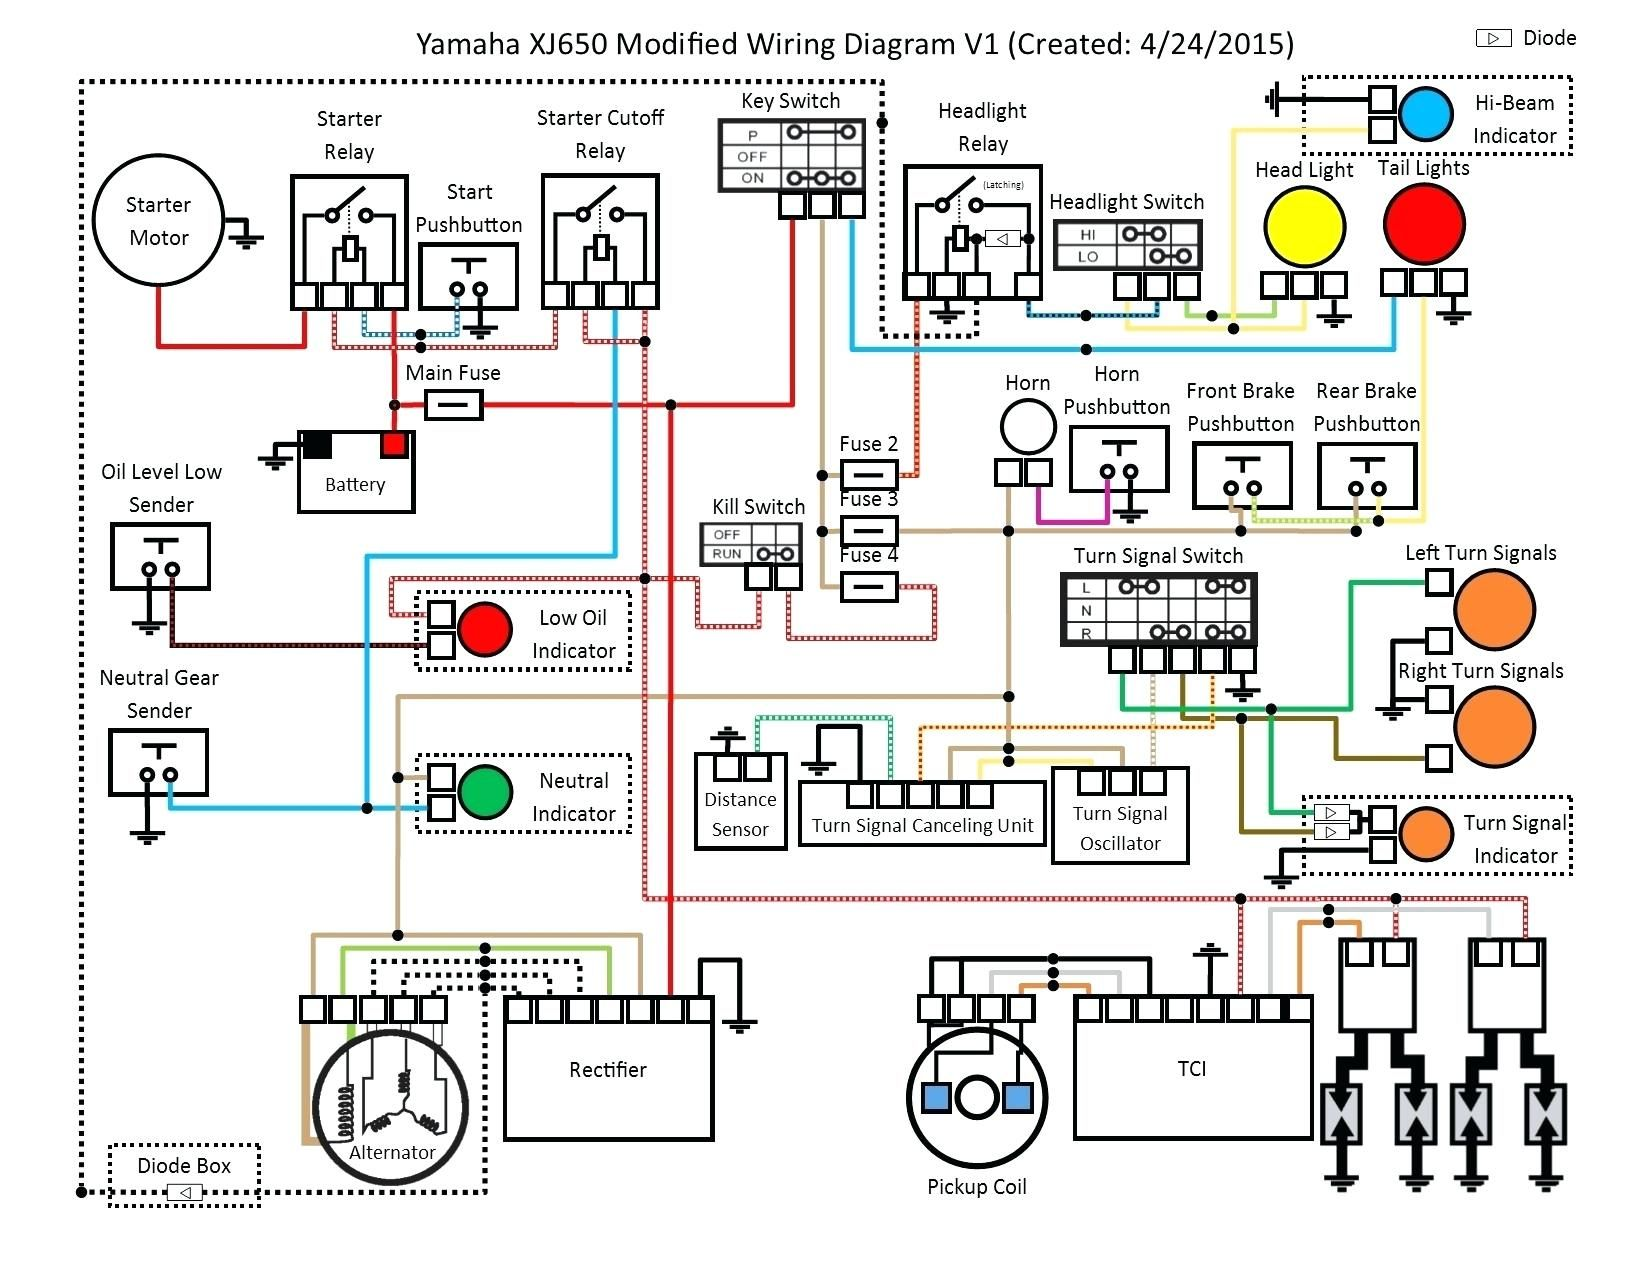 Honda Xrm 125 Electrical Wiring Diagram Lukaszmira Com At in ... on